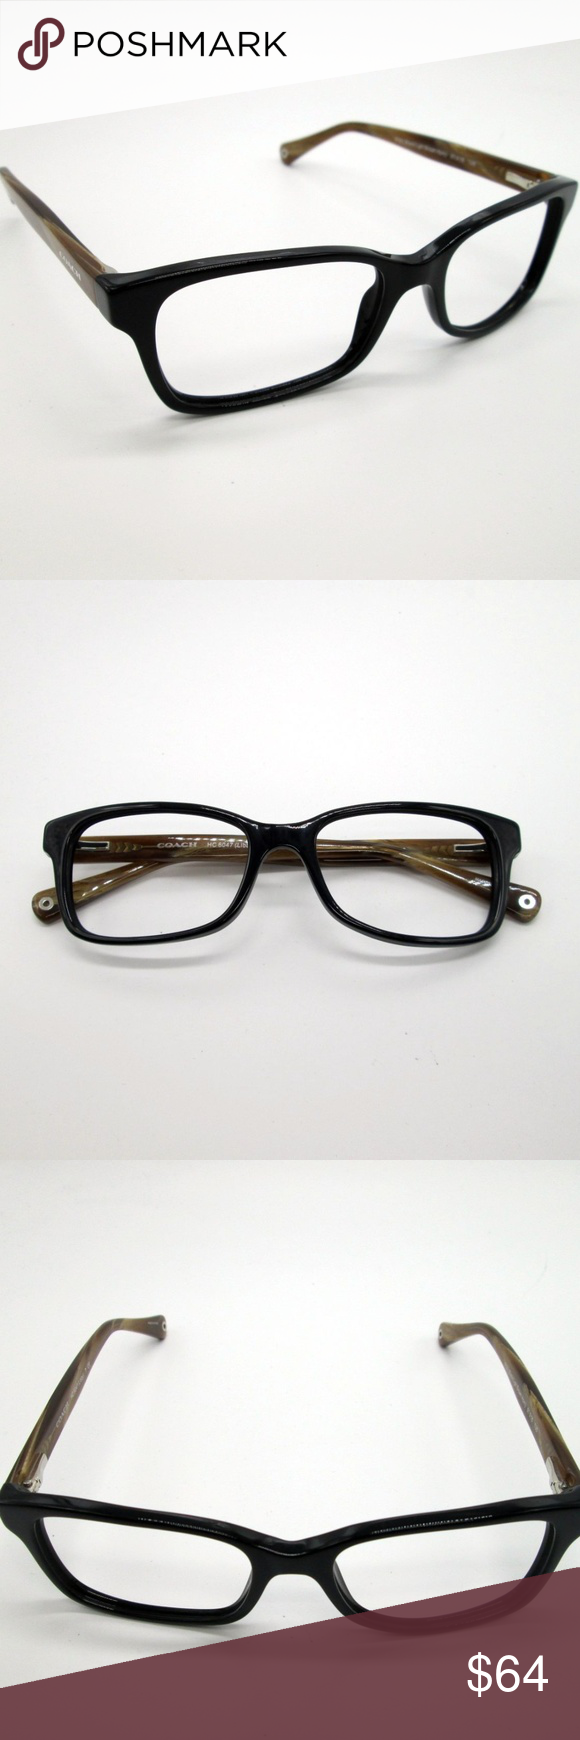 4d24df27af865 Coach HC6047 Unisex Eyeglasses DAE403 Coach HC6047 Unisex Eyeglasses DAE403  Frame is in Excellent